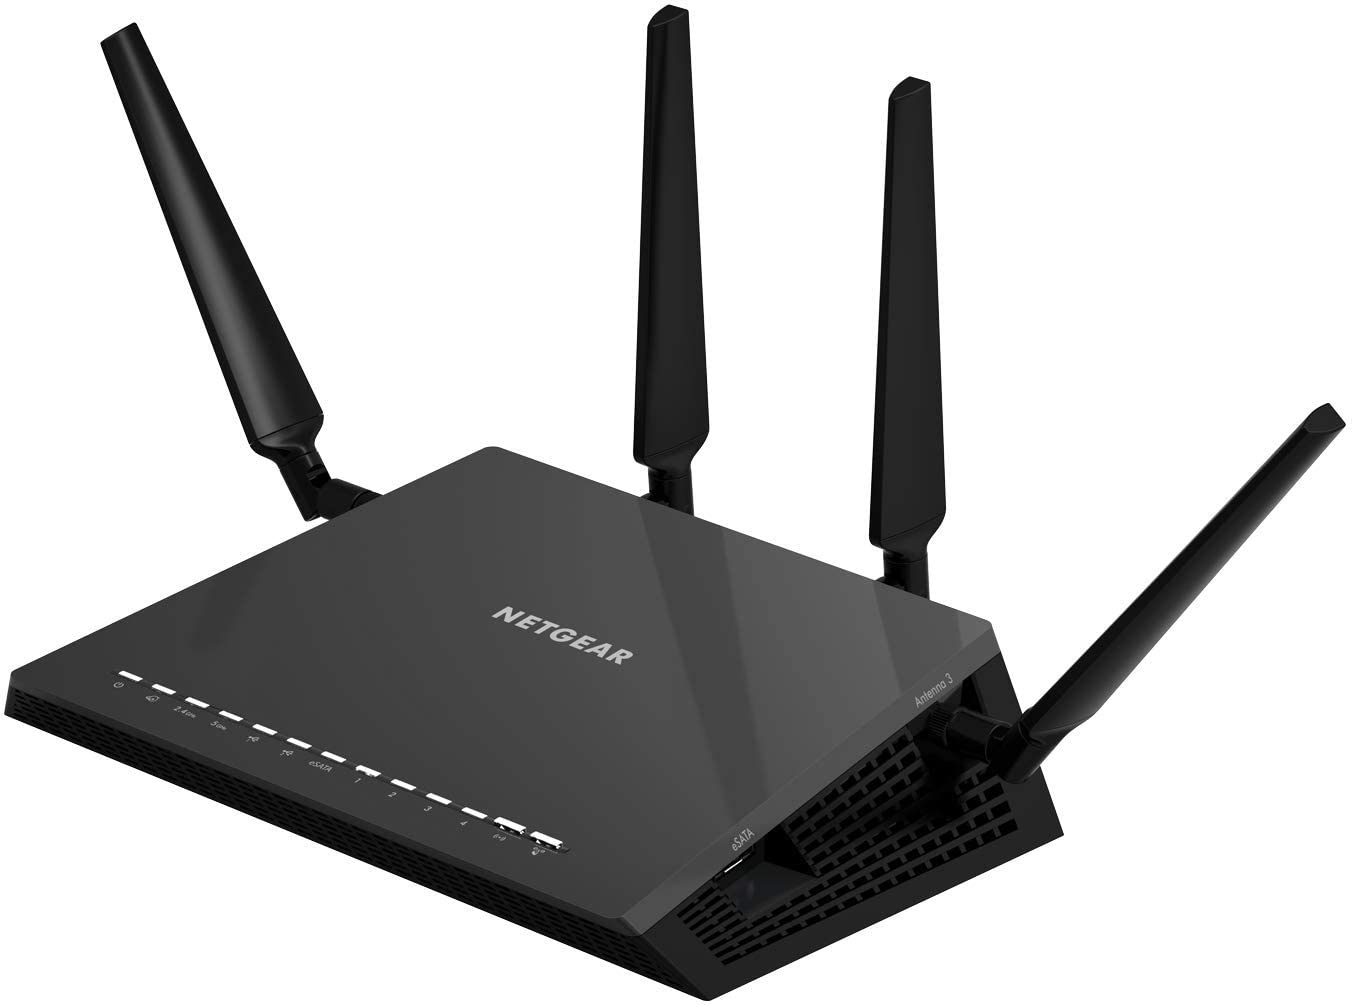 NETGEAR Nighthawk R7800 X4S Smart WiFi Router